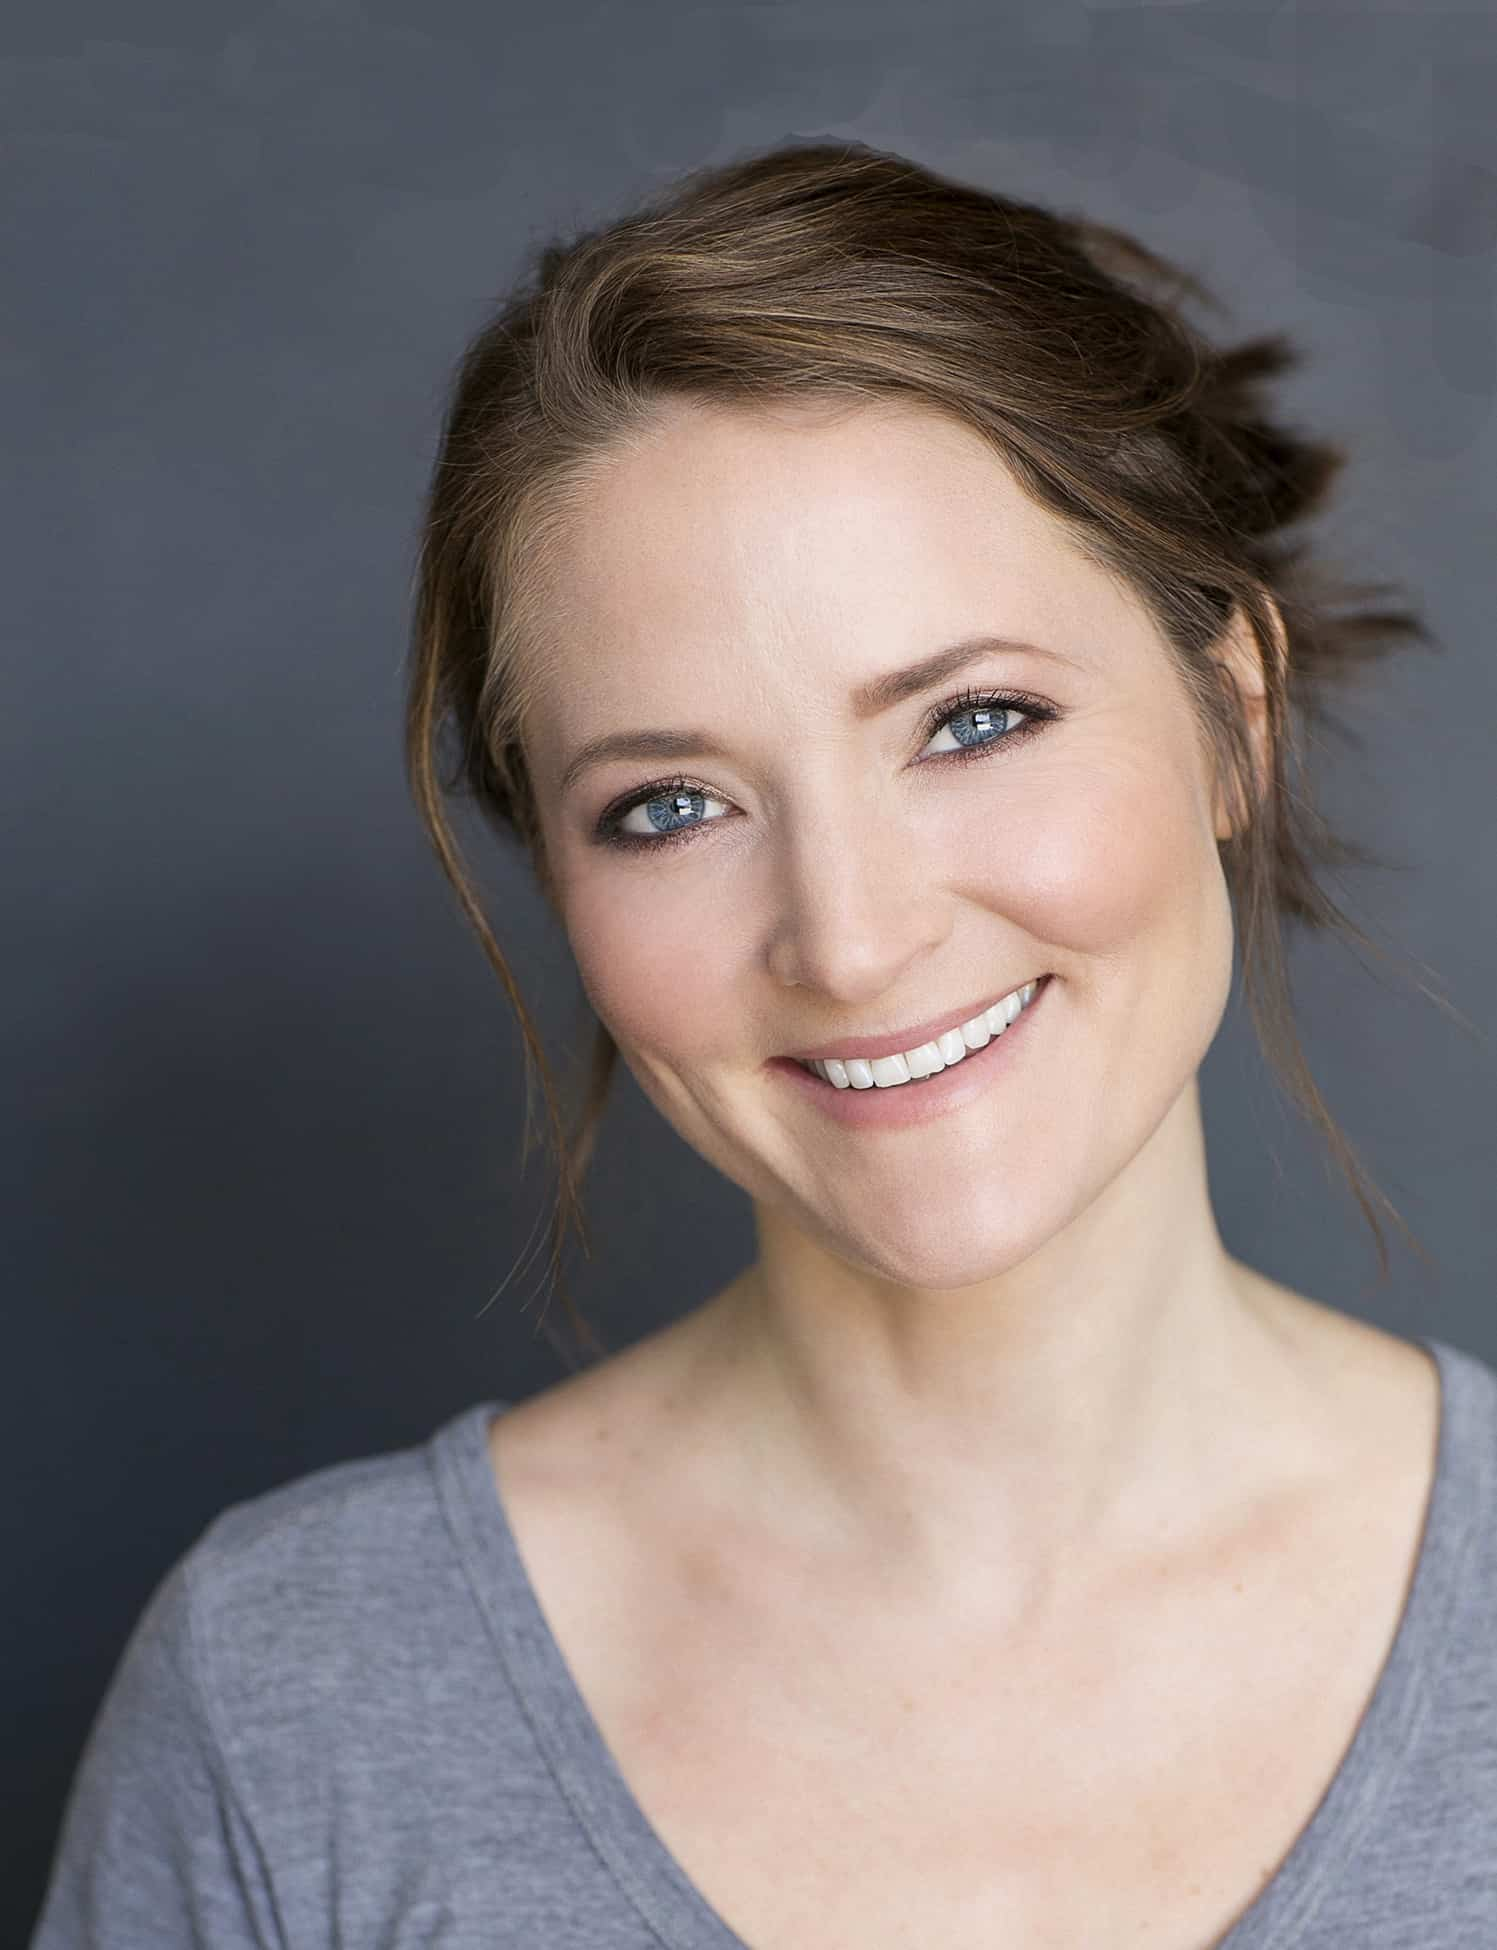 Comic, composer, singer and actor Leah Sprecher